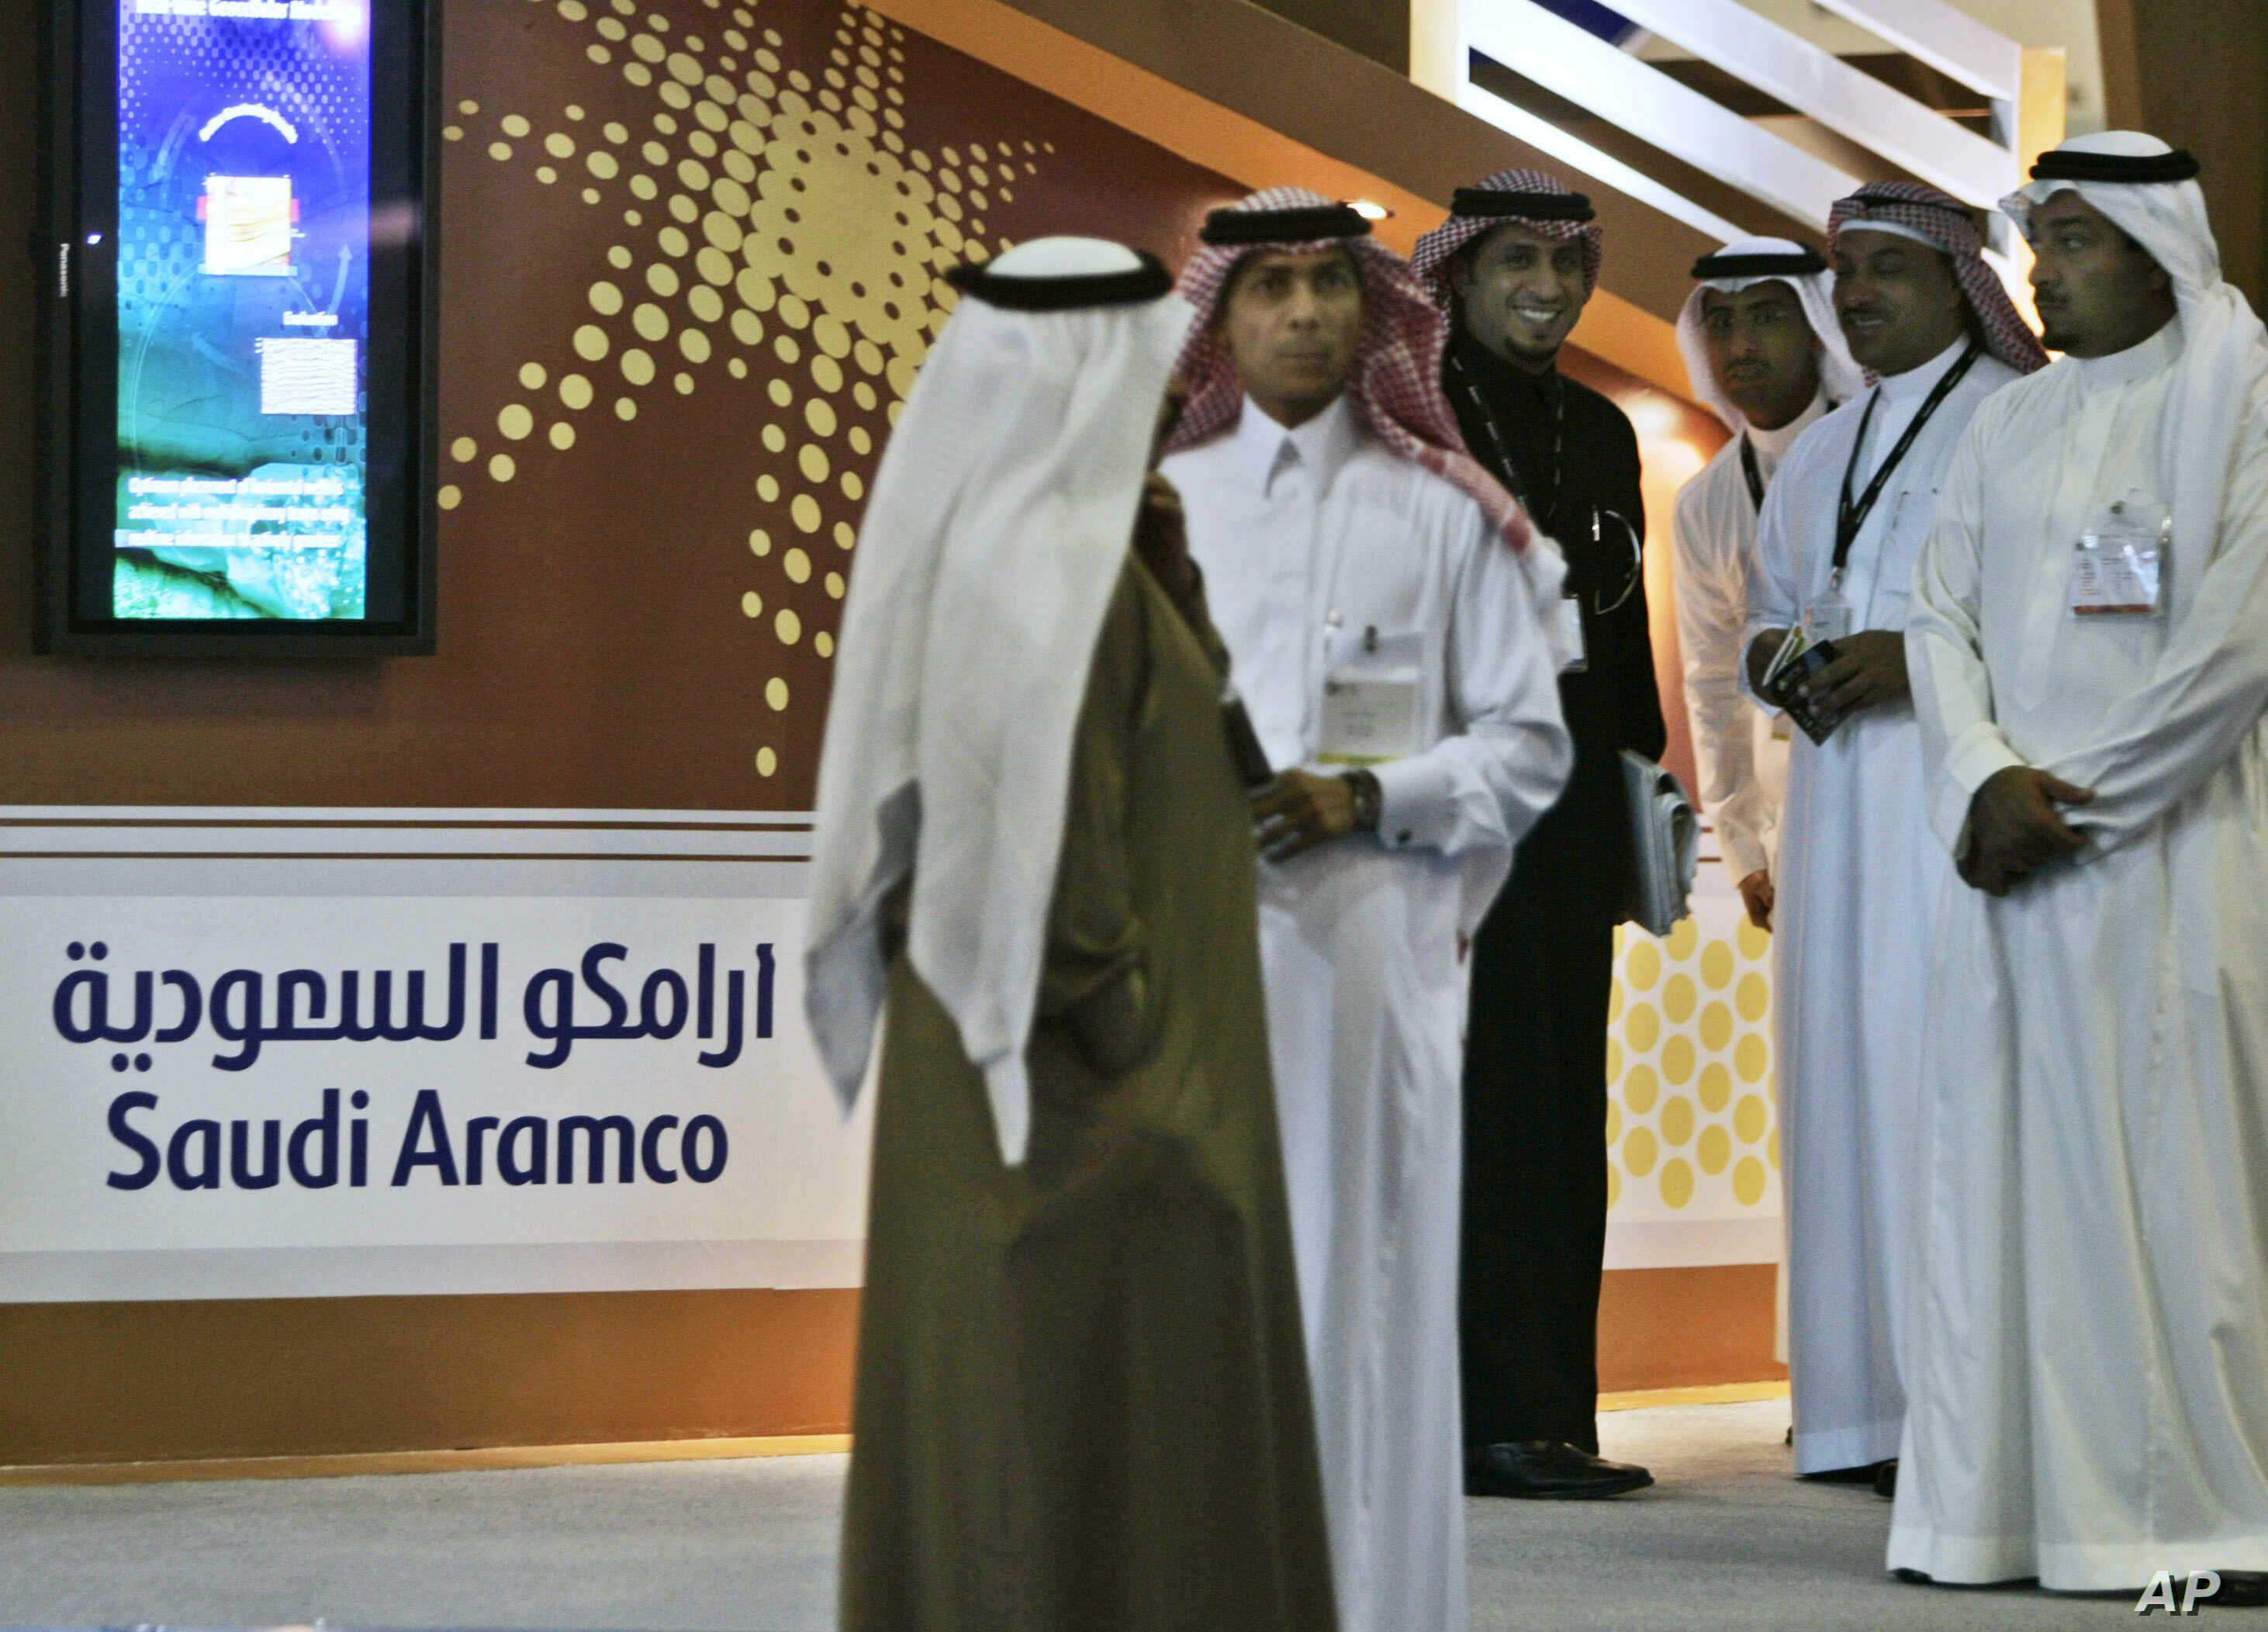 FILE - Employees of the Saudi Aramco oil company prepare for the first day of the Arab Oil and Gas exhibition in Dubai, United Arab Emirates.